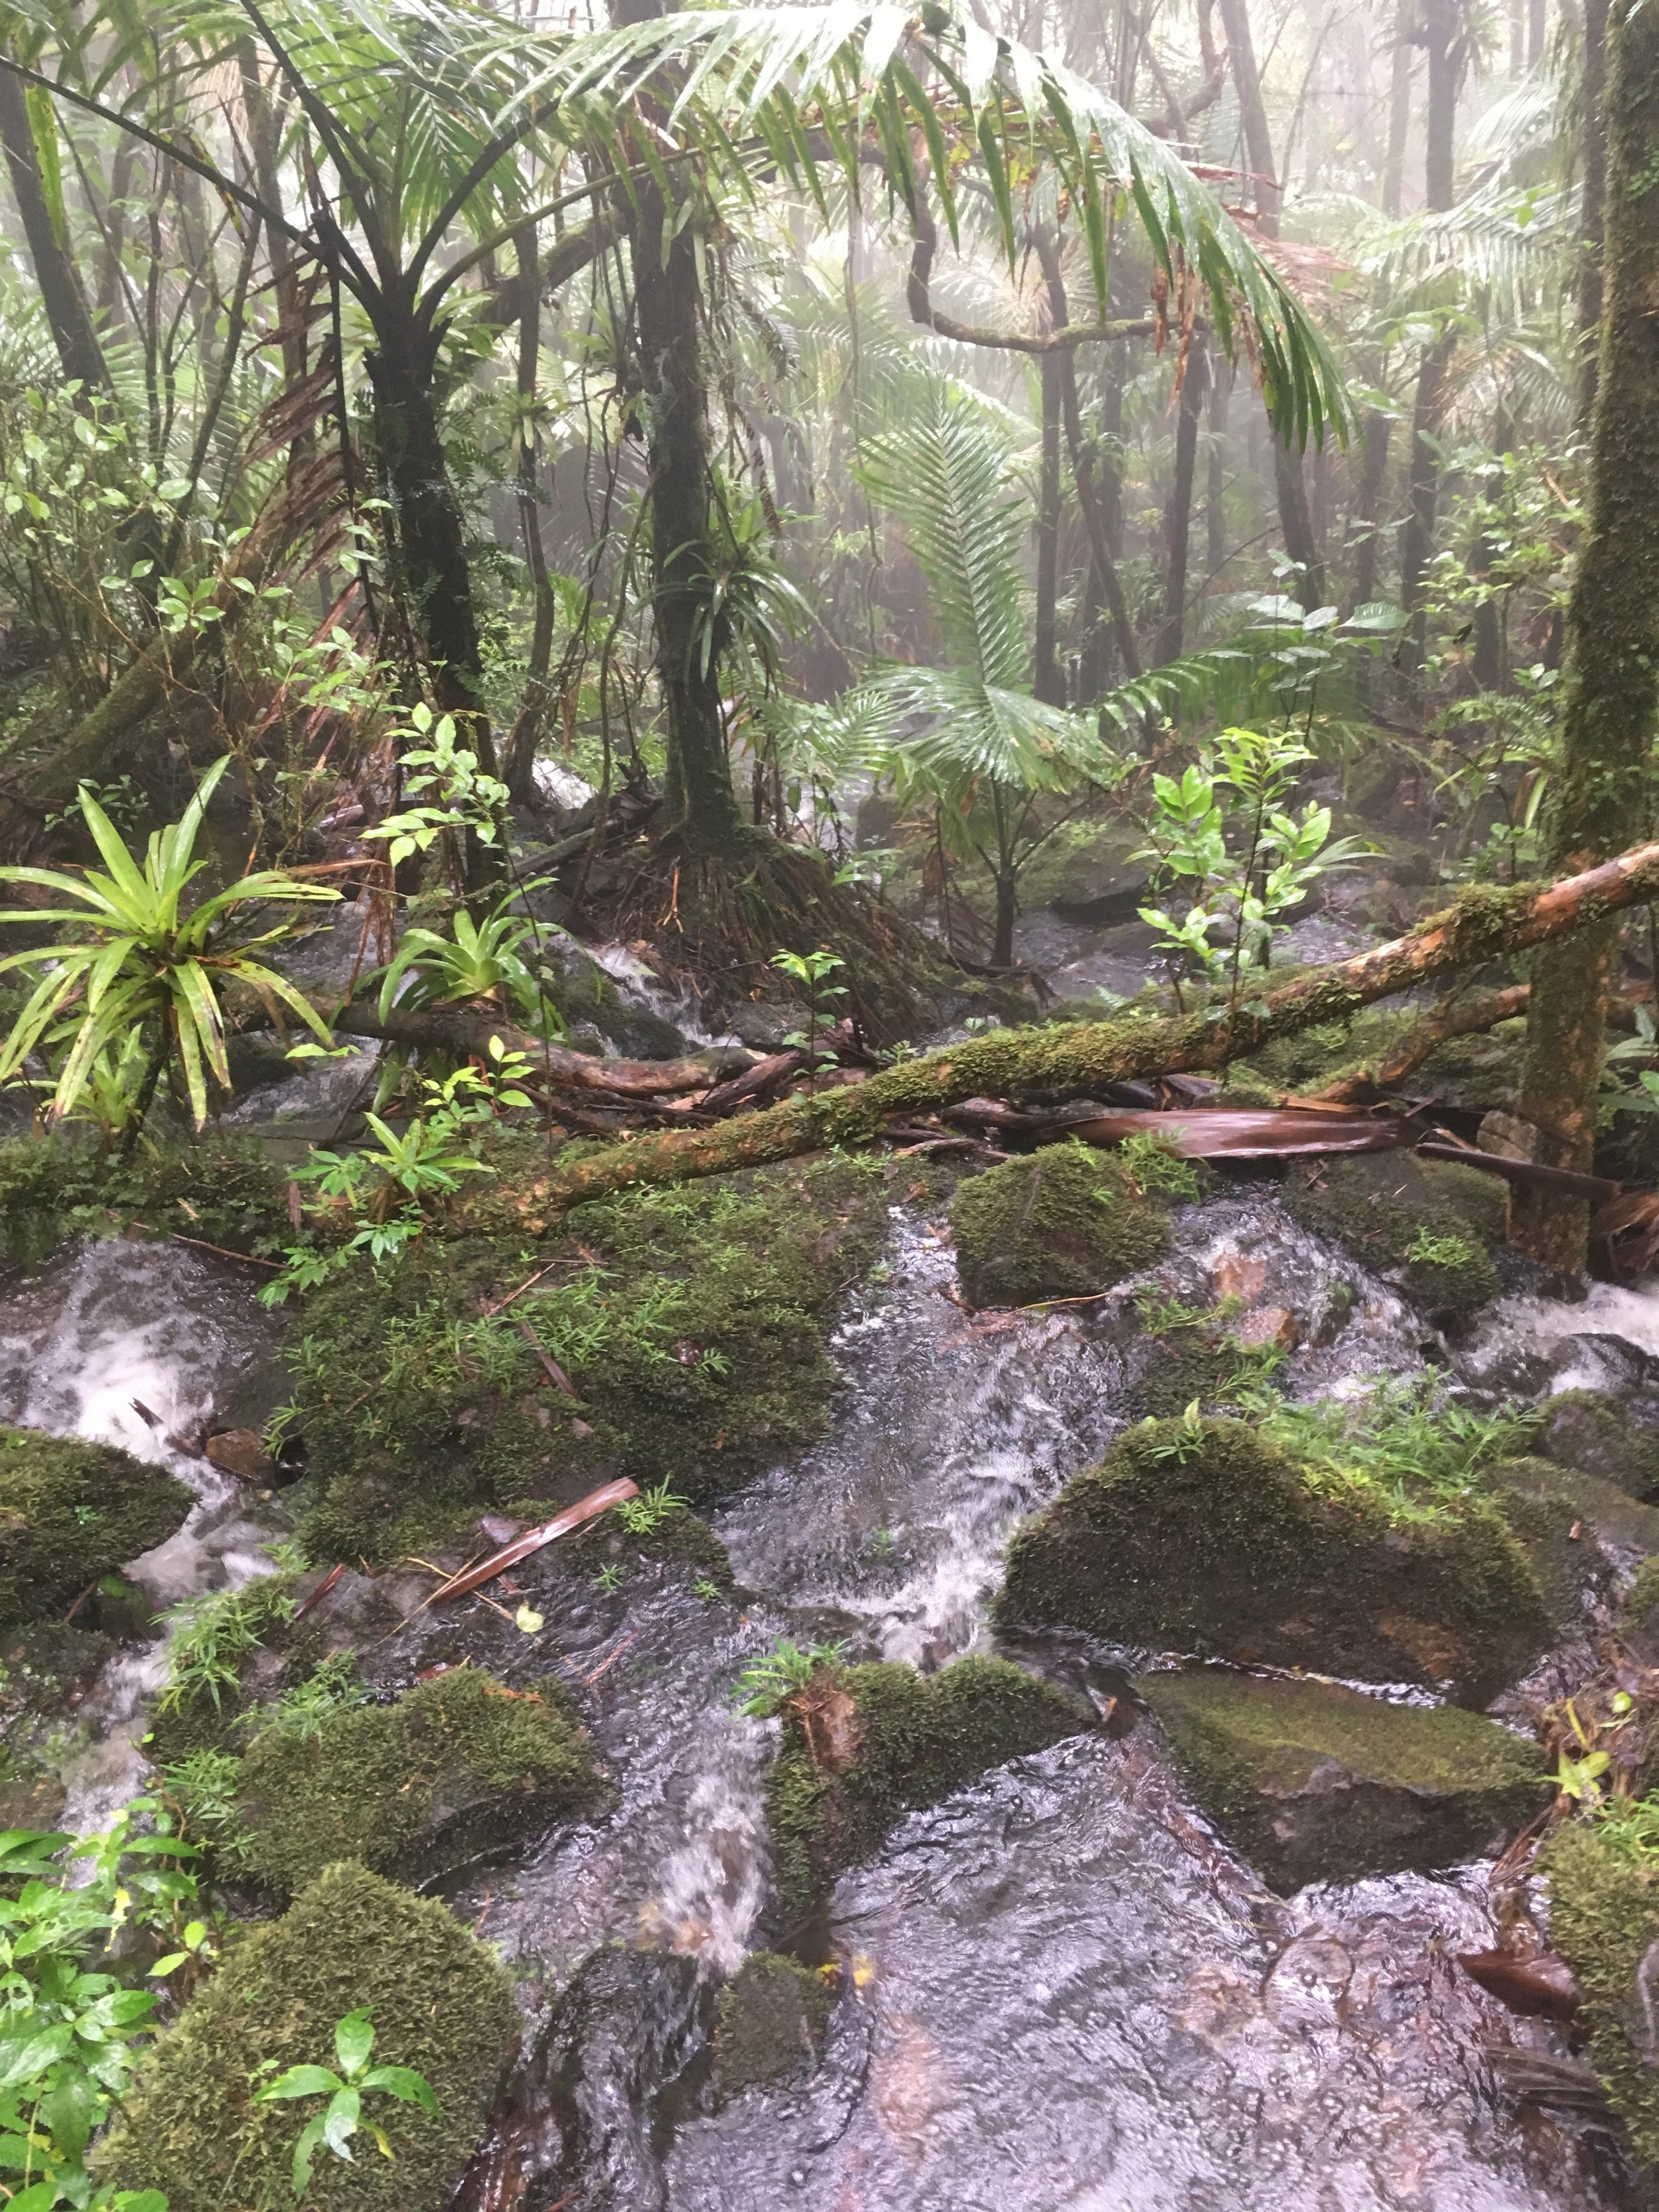 One of the many falling streams we passed through